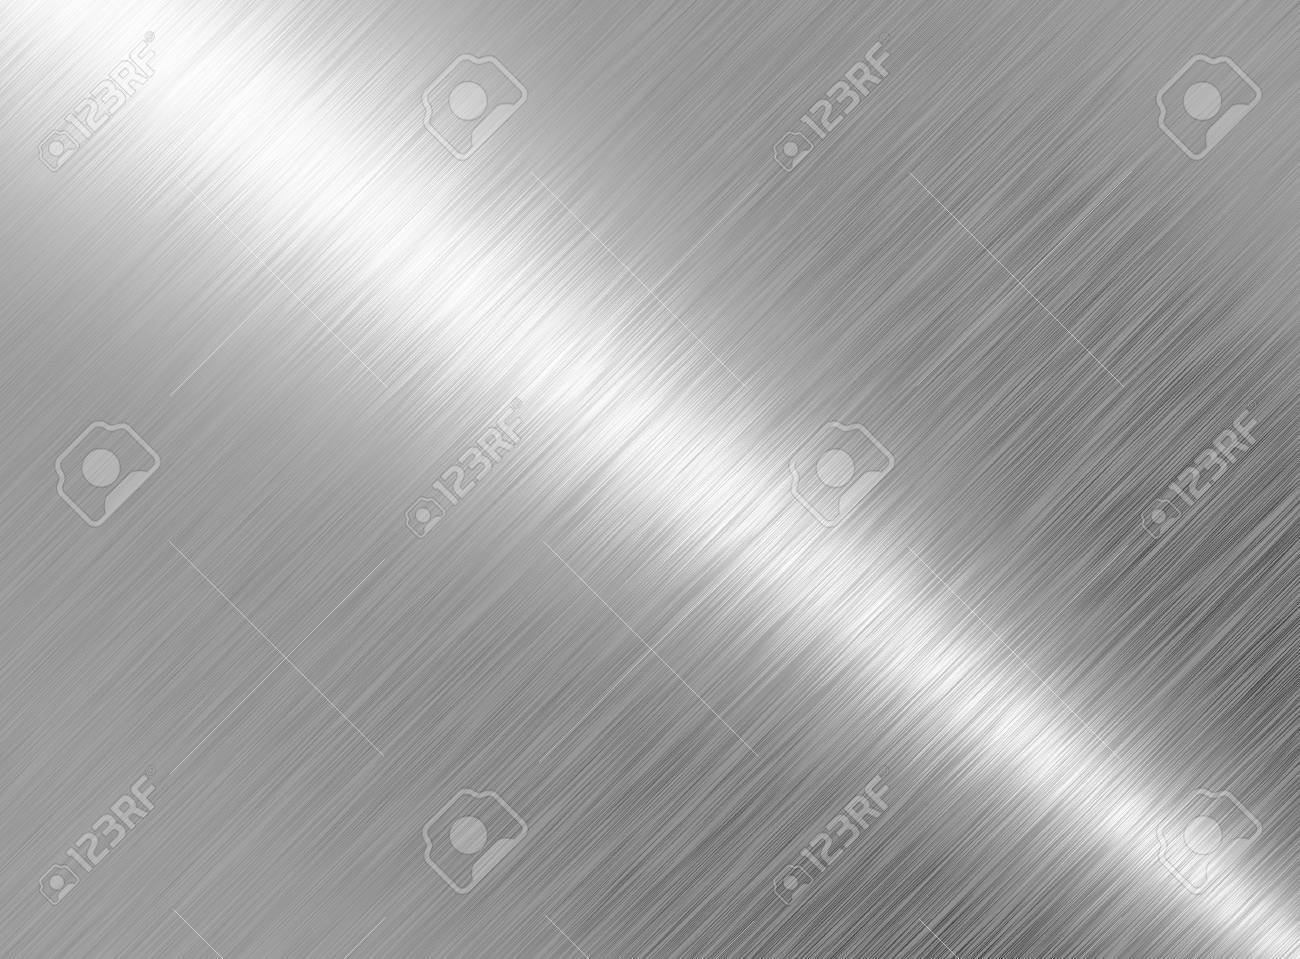 Brushed metal texture abstract background Stock Photo - 8385558